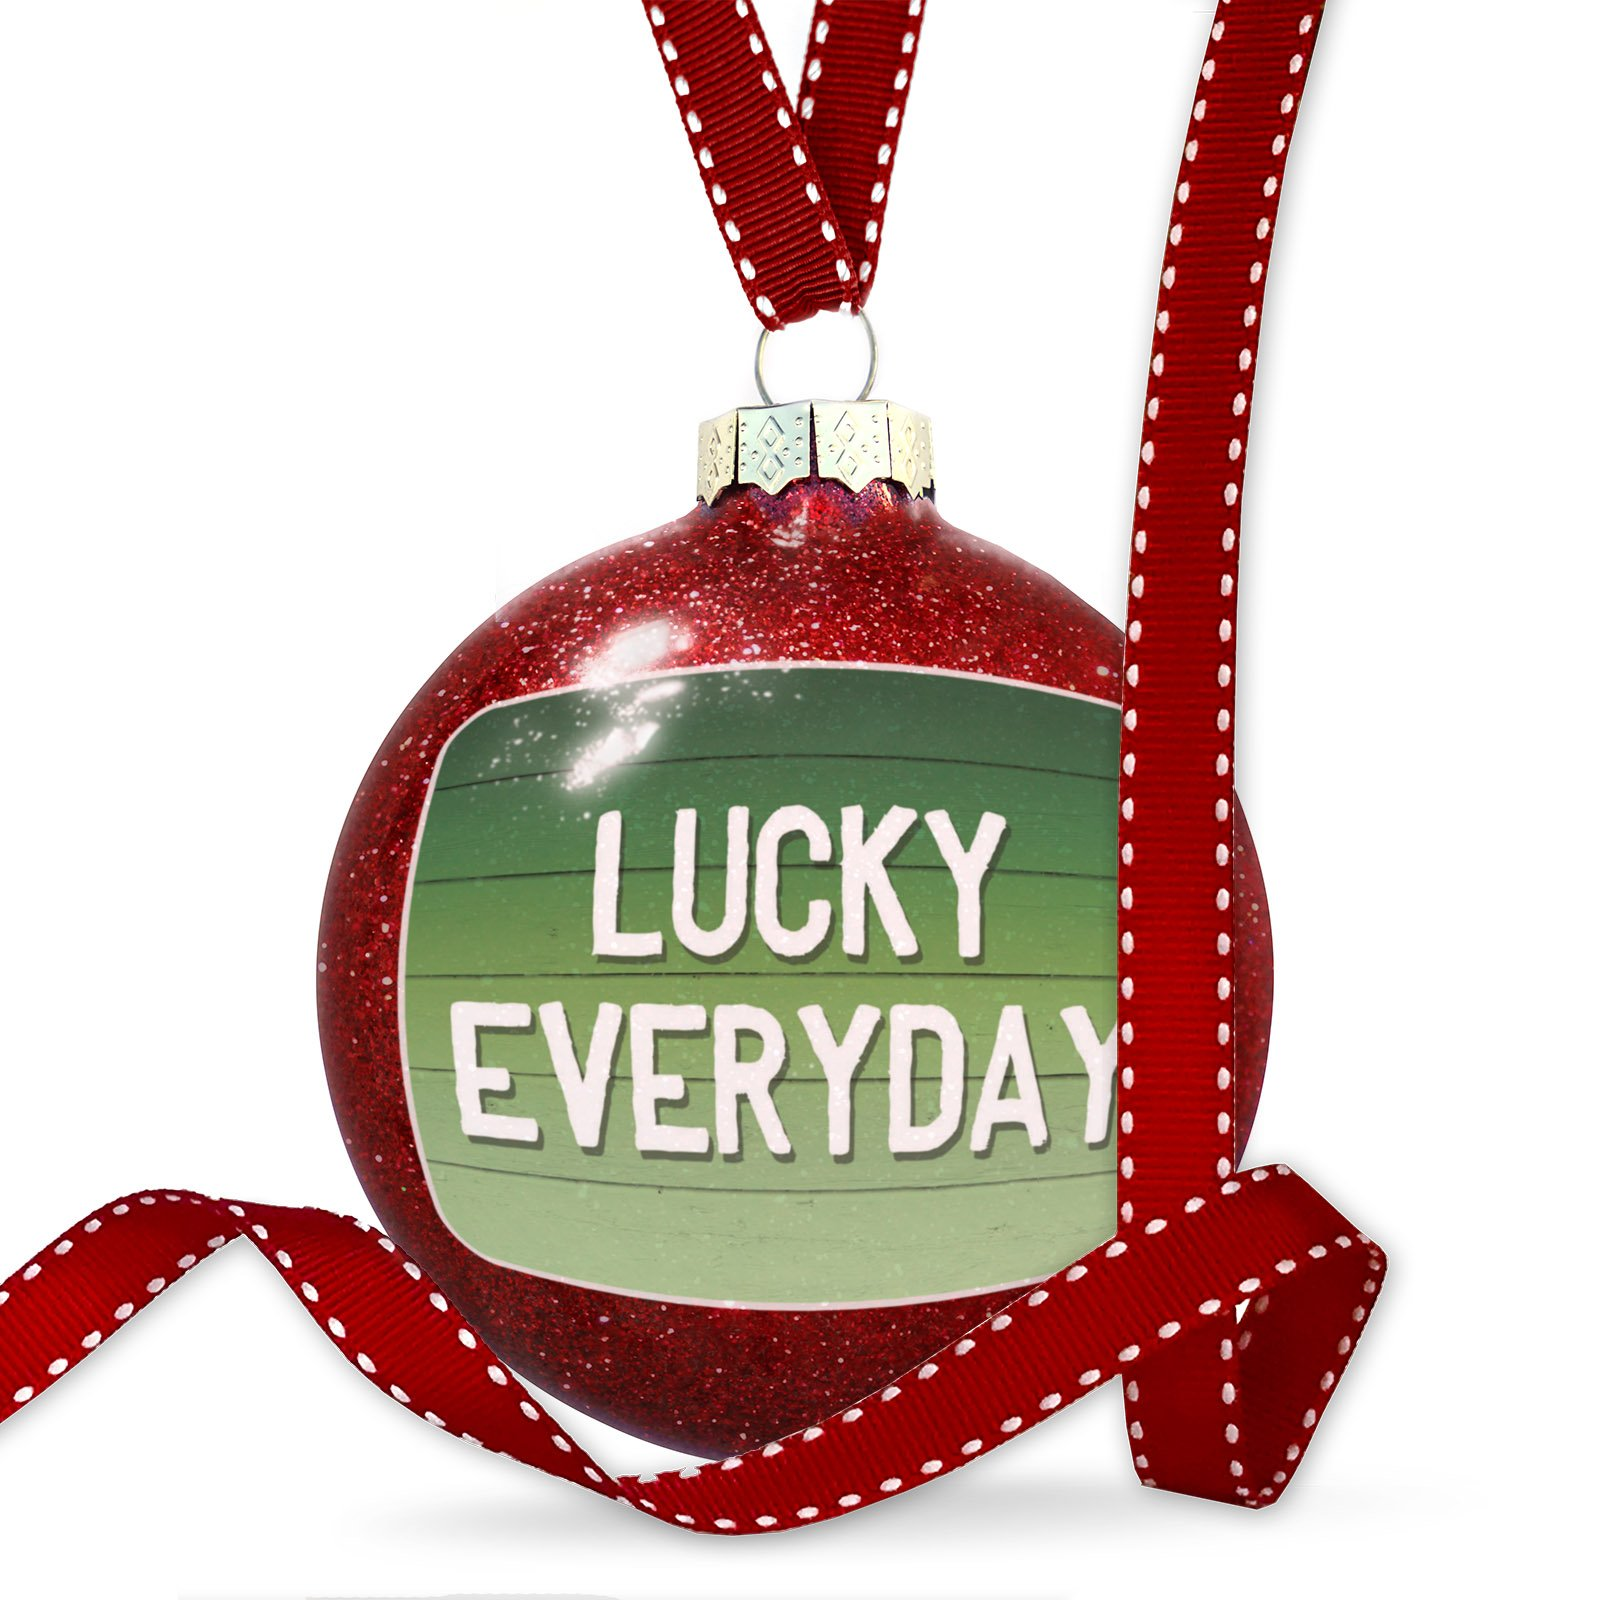 Christmas Decoration Lucky Everyday St. Patrick's Day Green Fade Ornament by NEONBLOND (Image #1)